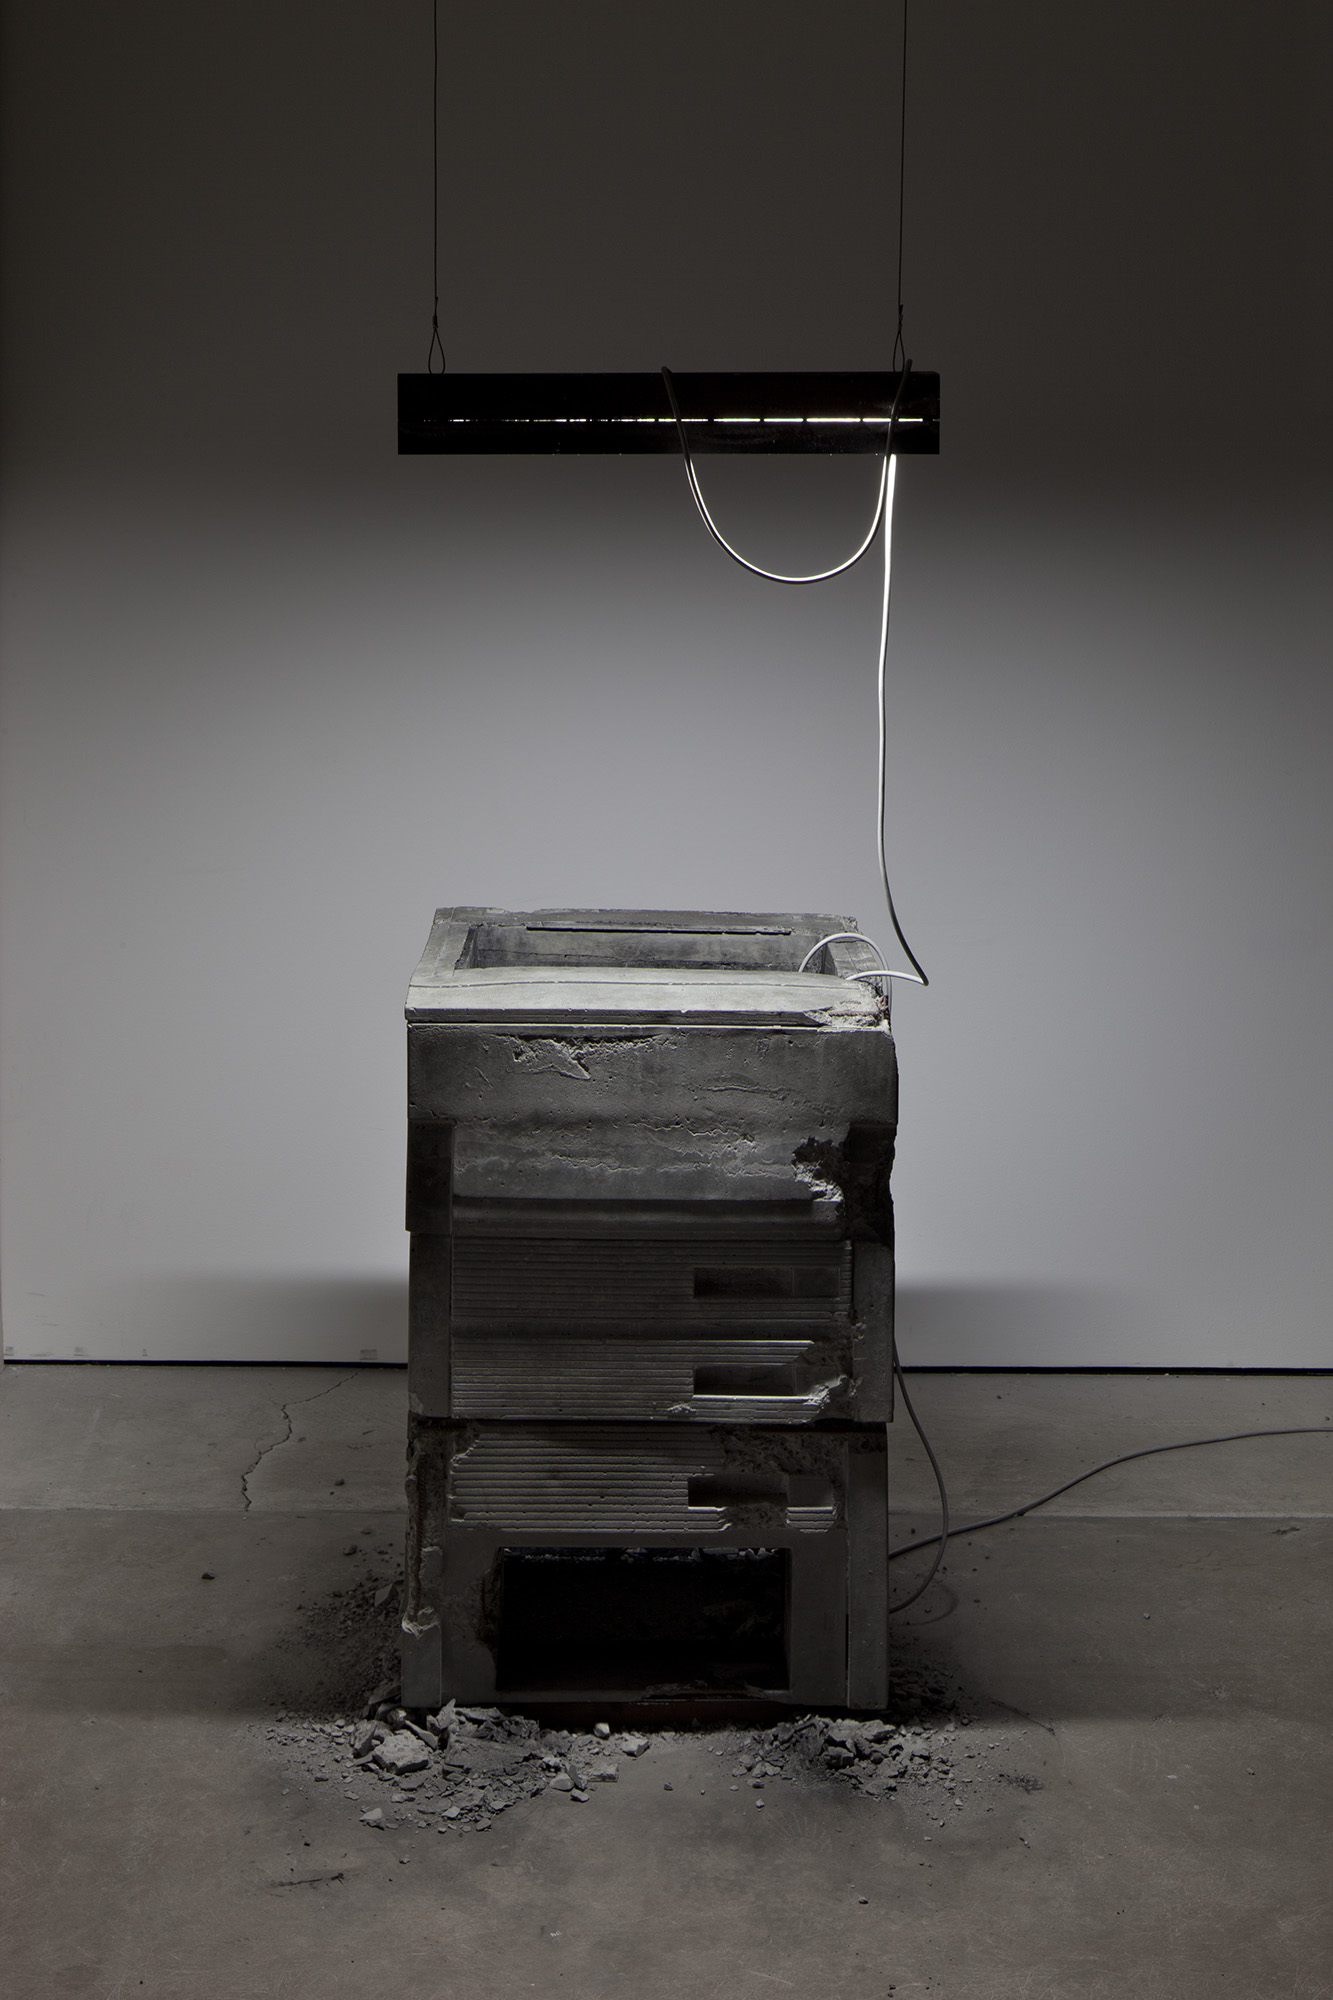 _Some Kinds of Duration_, 2011. Installation View, CCP - Centre for Contemporary Photography, Melbourne Australia, 2012. HD video colour, silent, concrete, fluorescent light, steel, carbon.